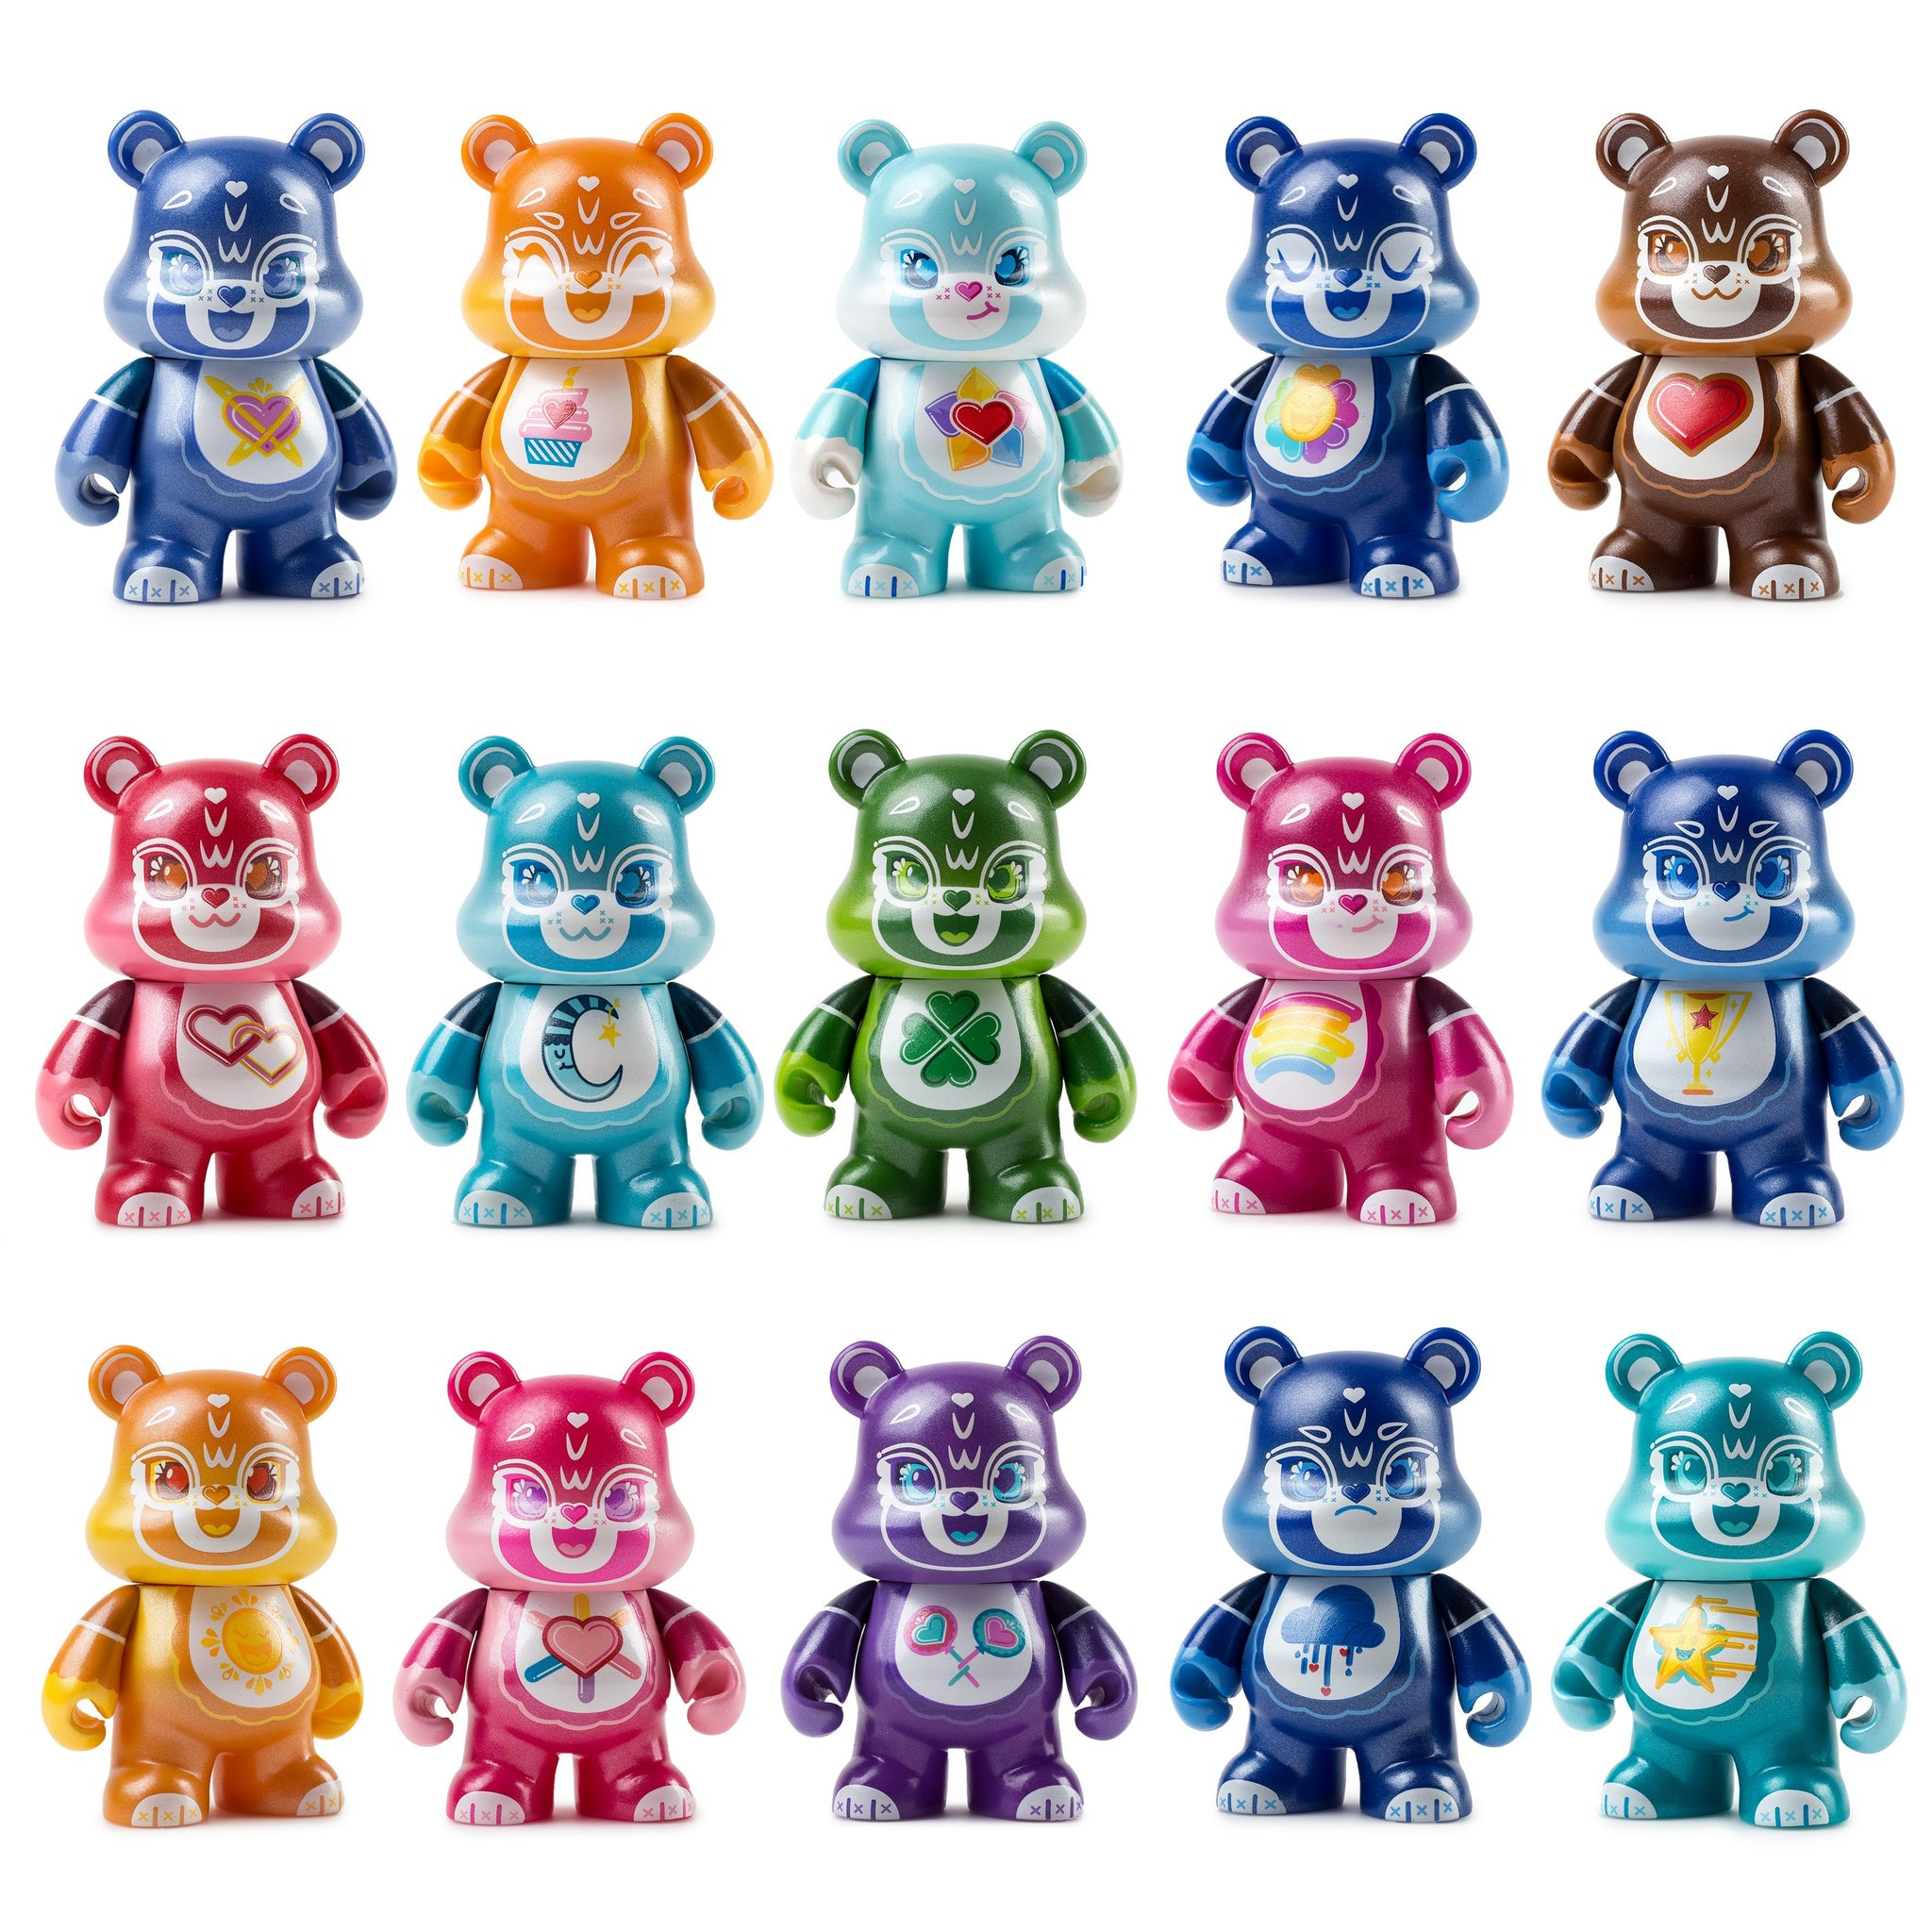 Care Bears Toys Art Figures Amp Collectibles By Kidrobot